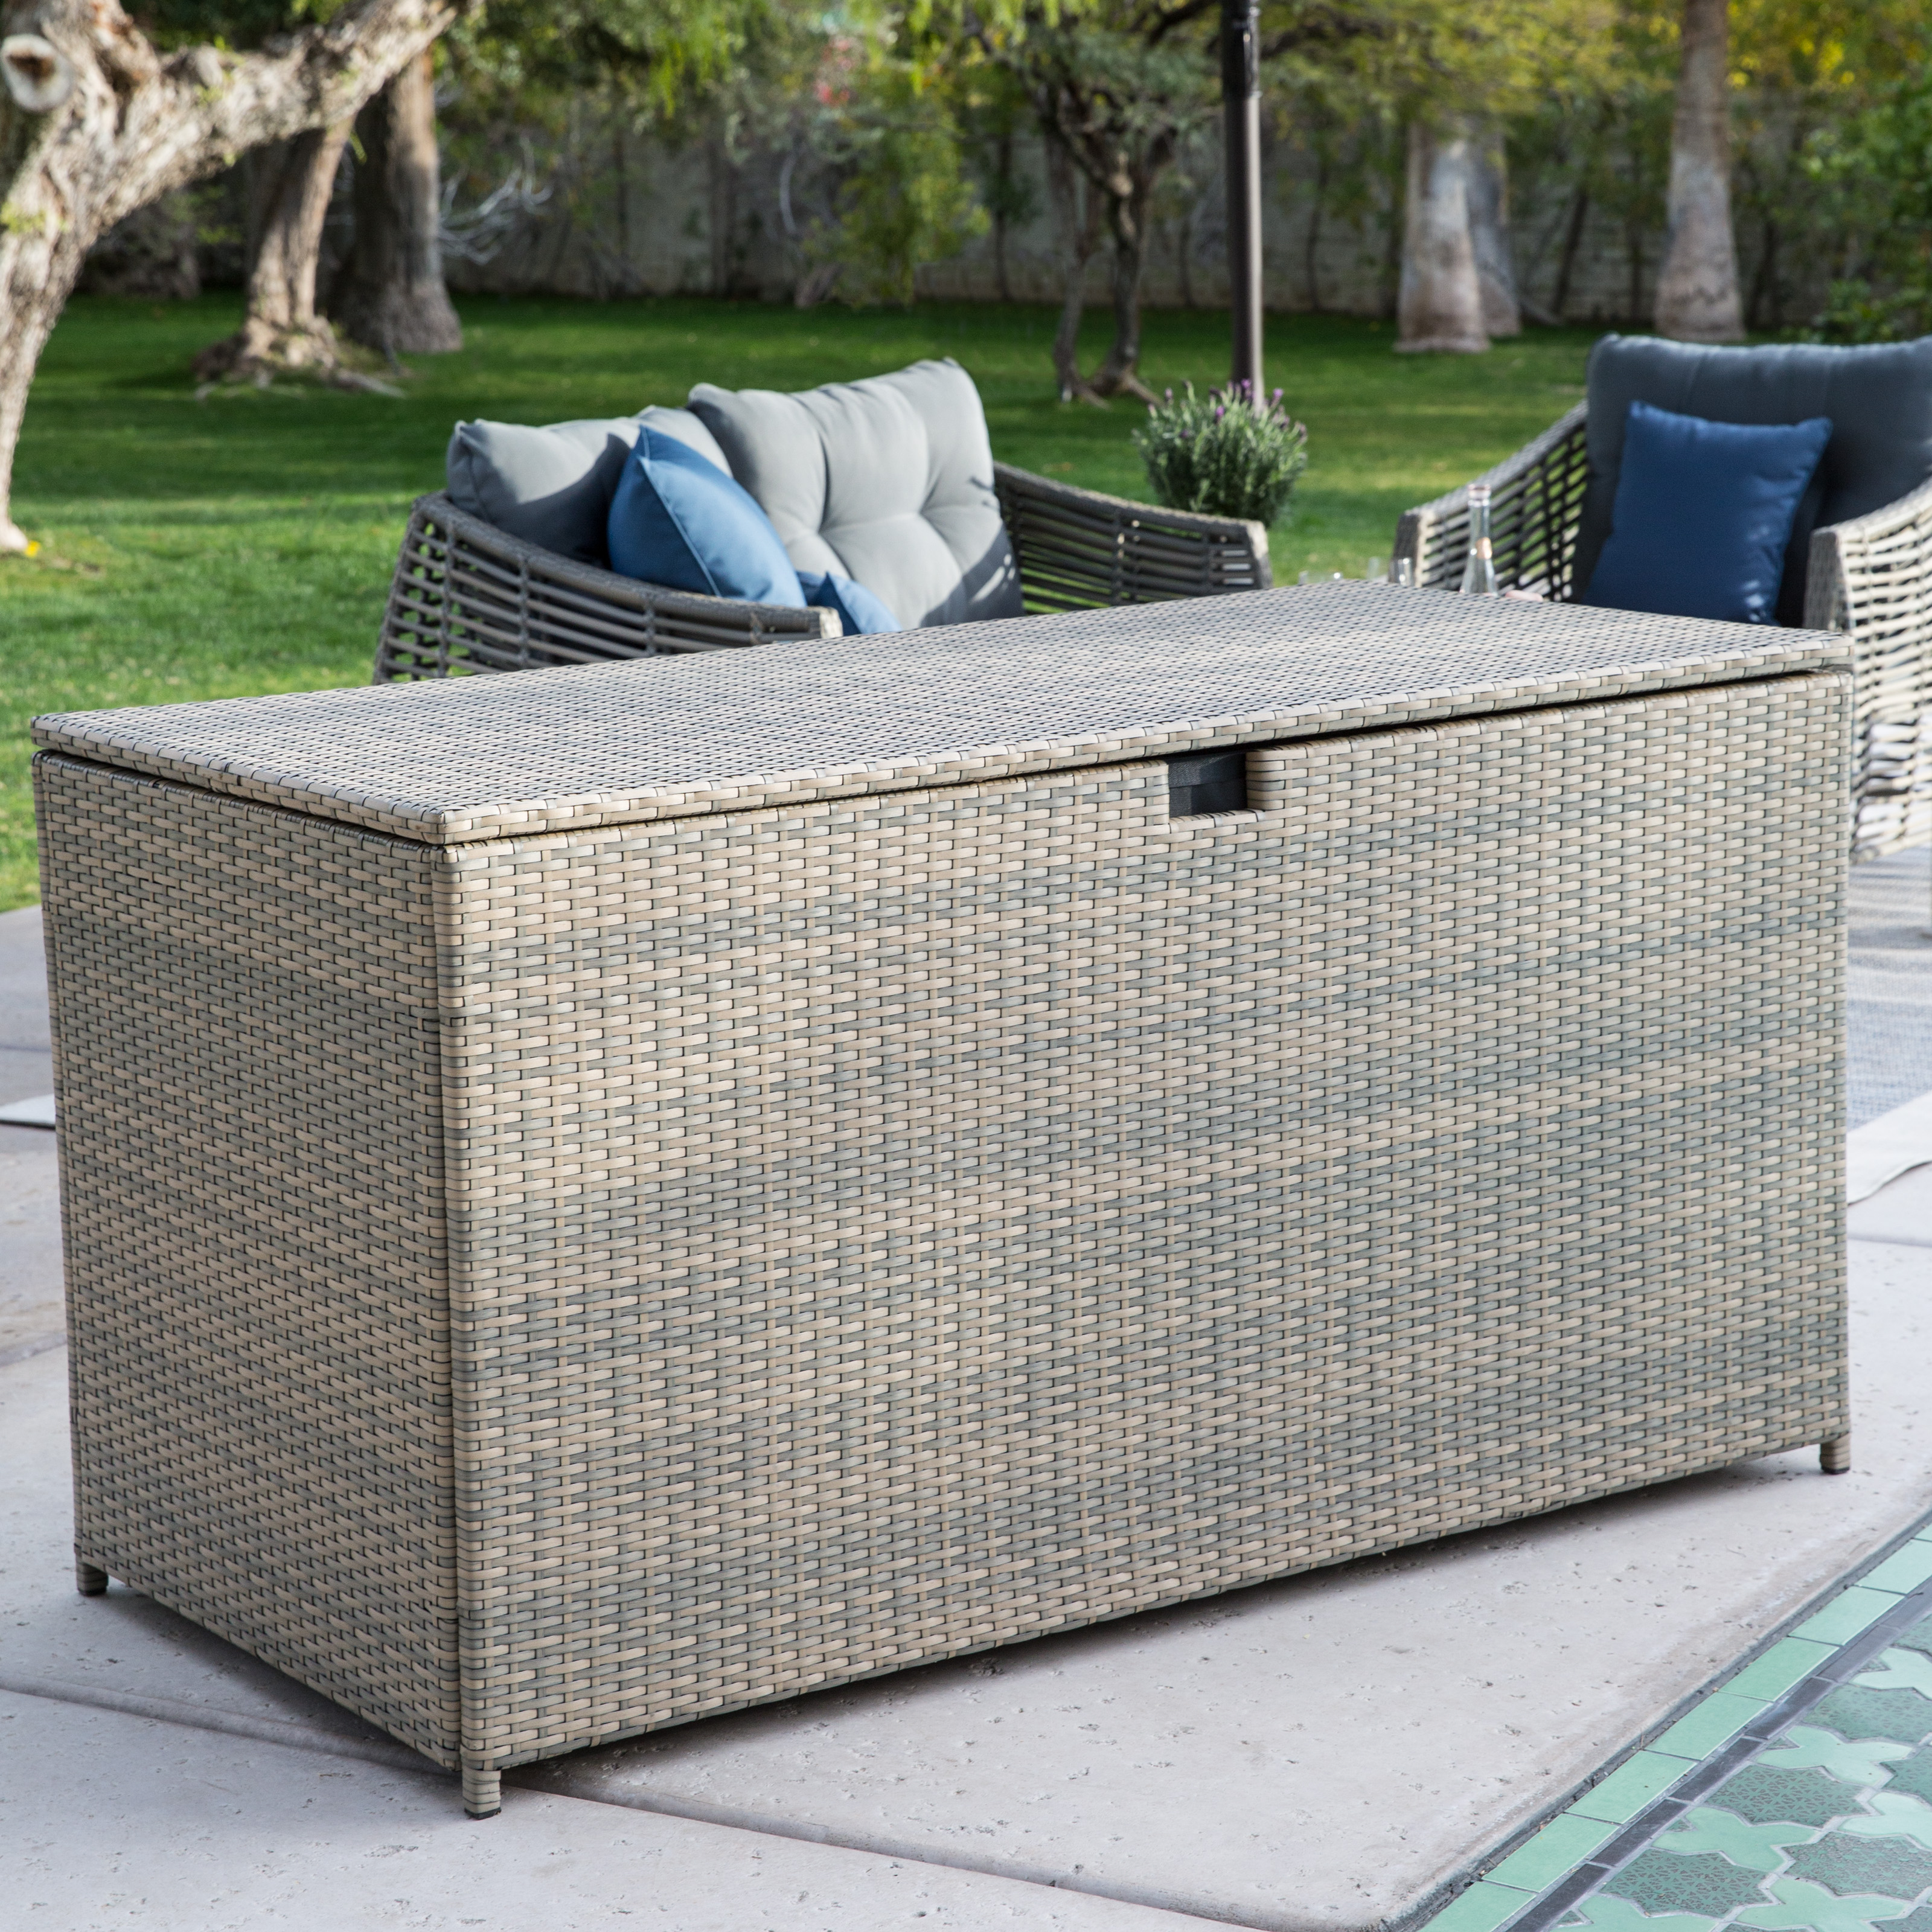 Belham Living Kambree All Weather Wicker 190 Gallon Deck Box Outdoor Benches At Hayneedle